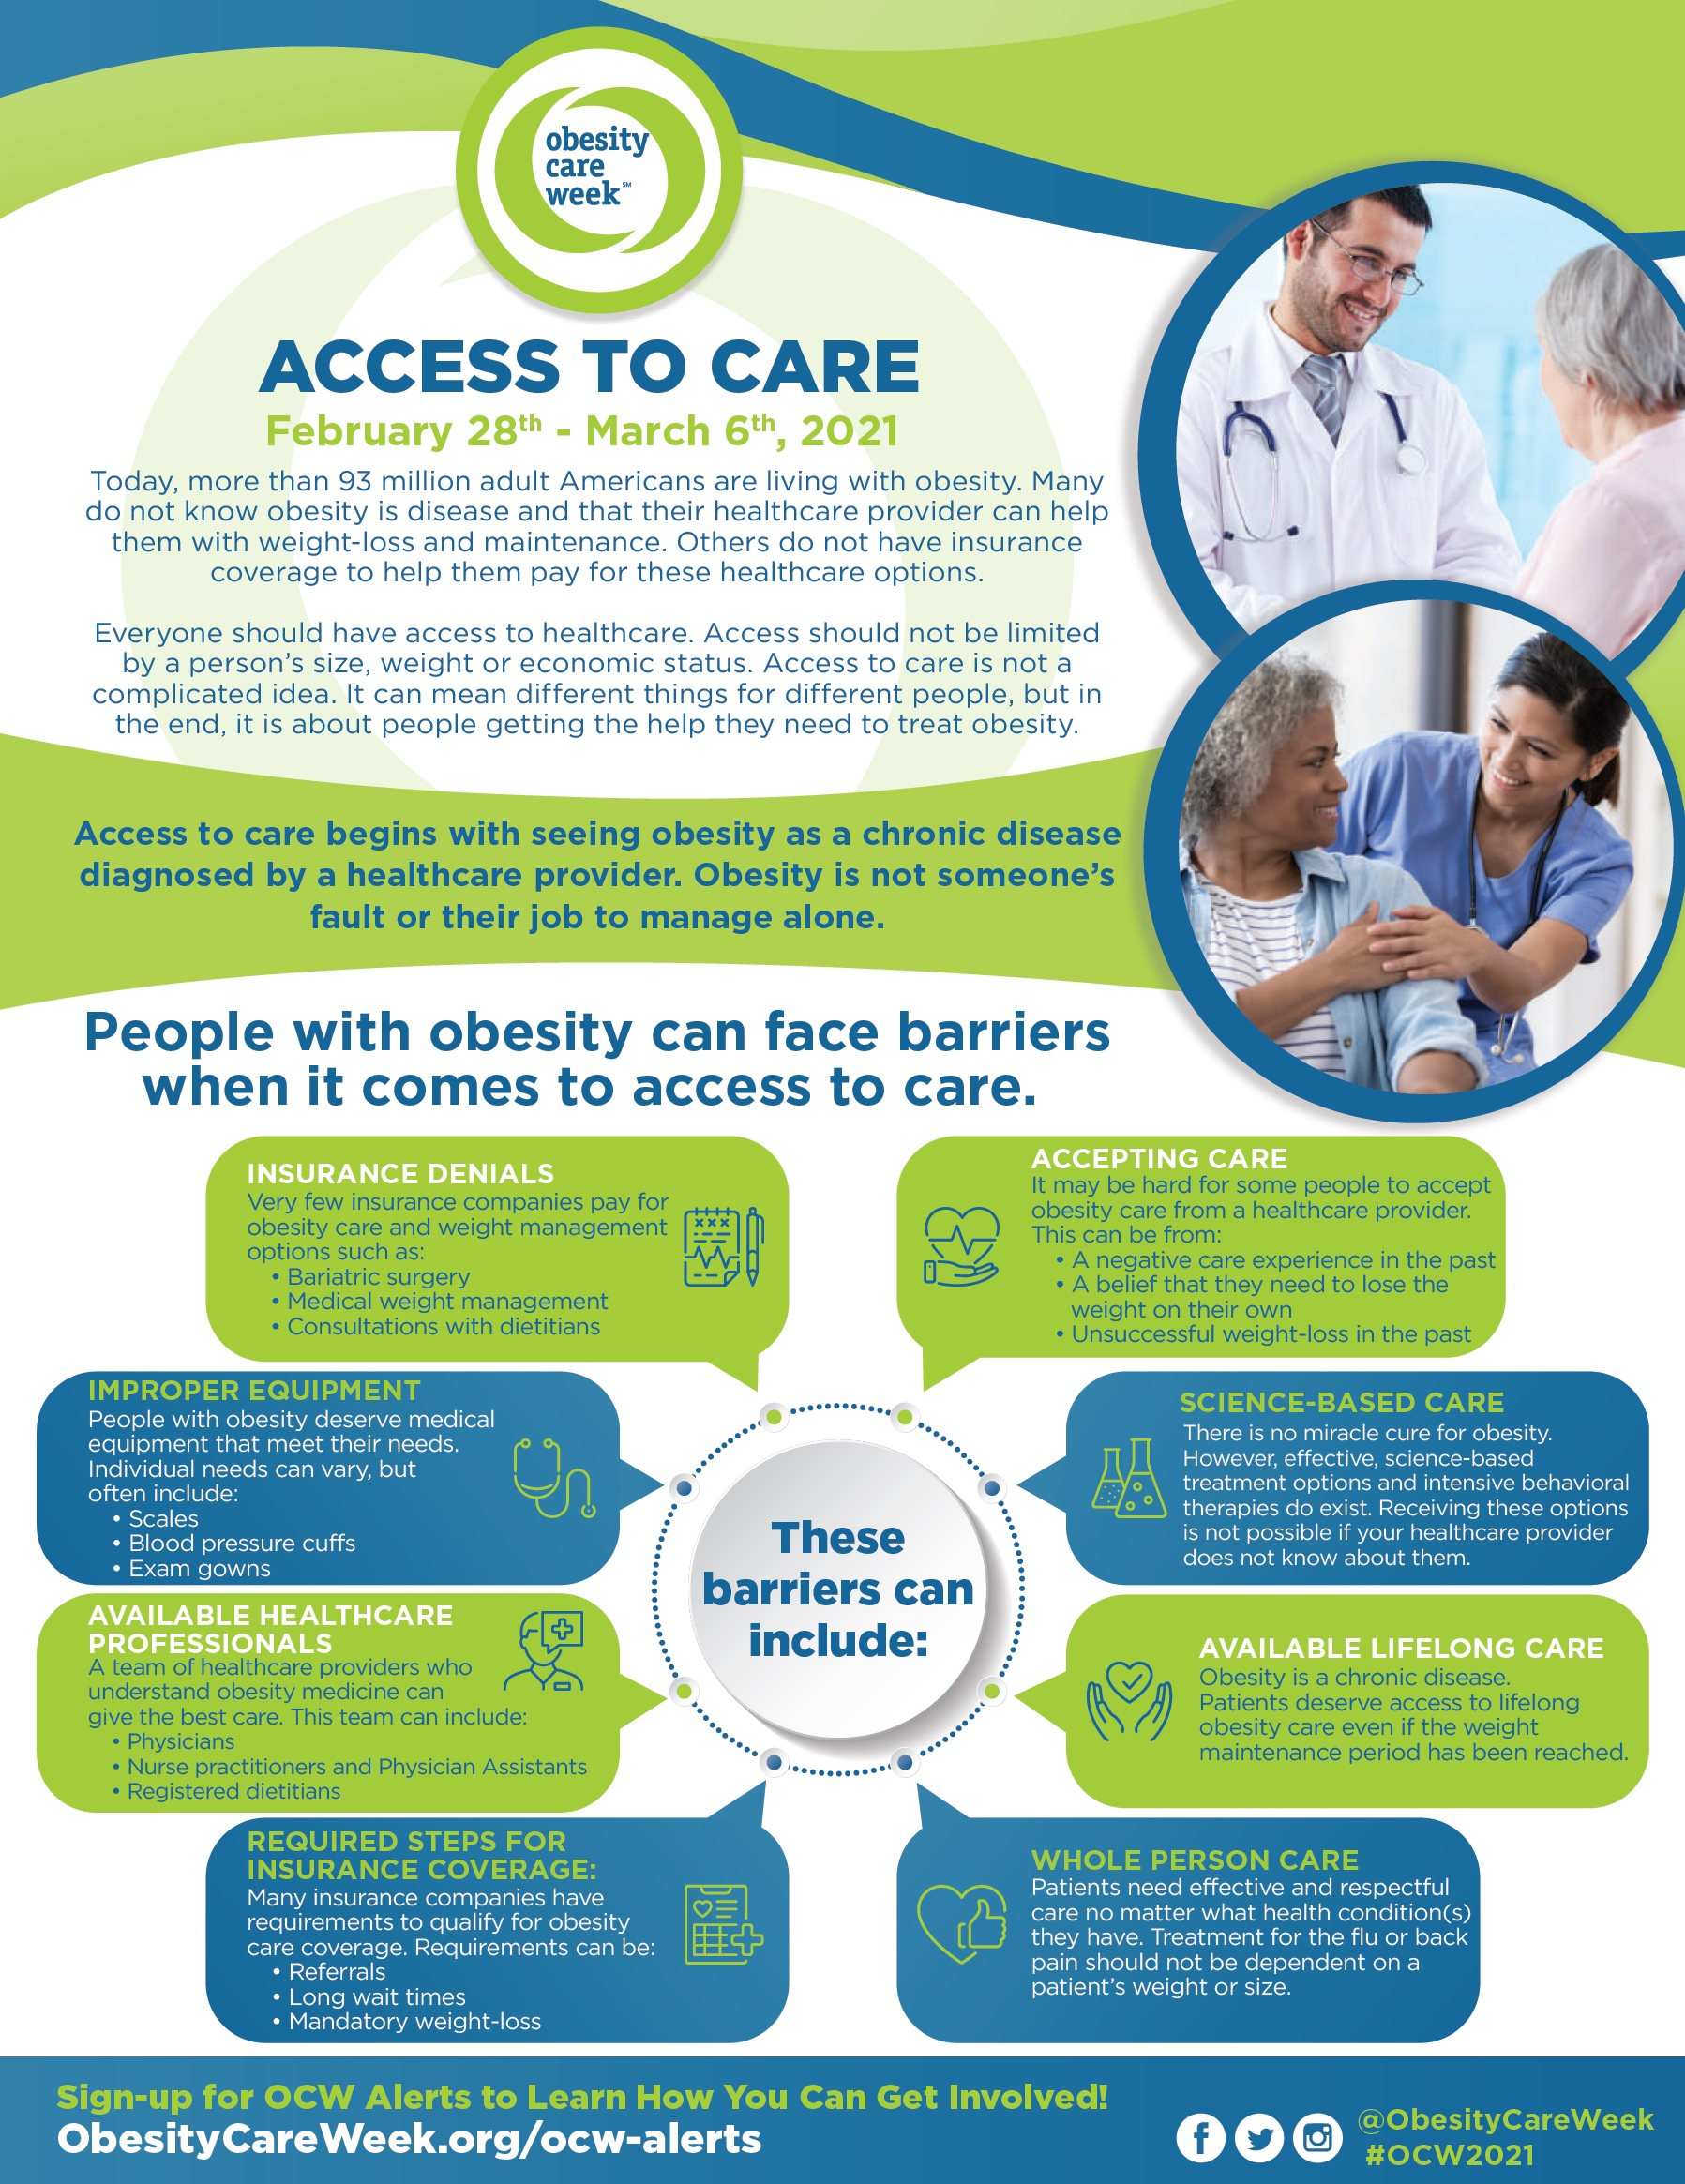 OCW2021 Access to Care